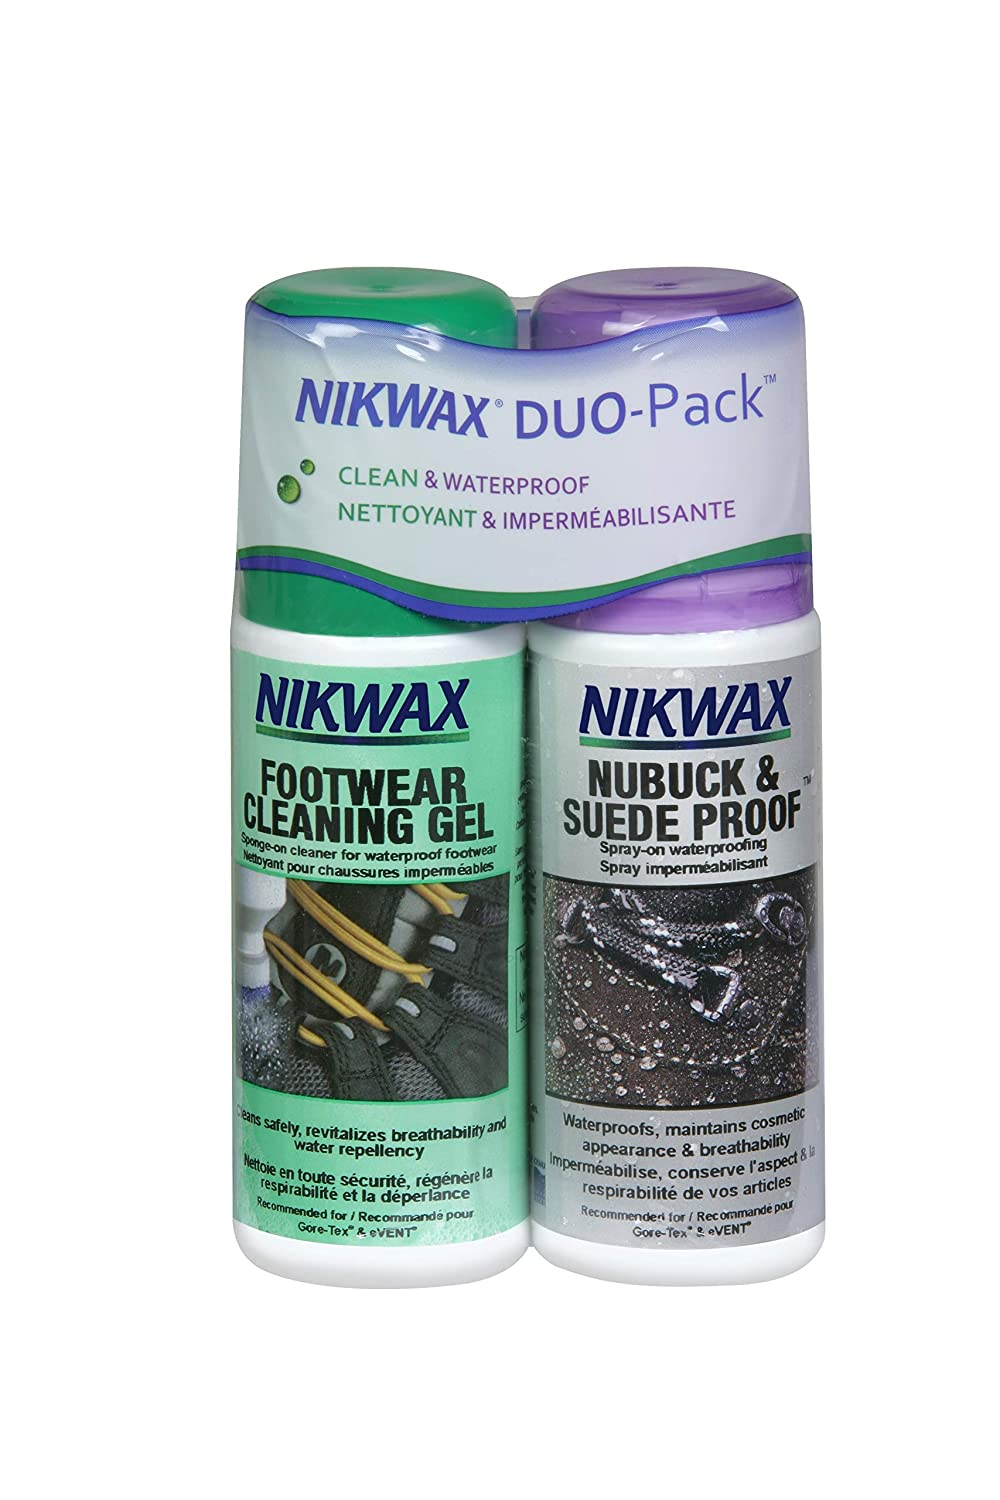 Nikwax Footwear Cleaner and Fabric/Leather Proof Spray-on Duo-Pack, 125 ml Nixwax 178